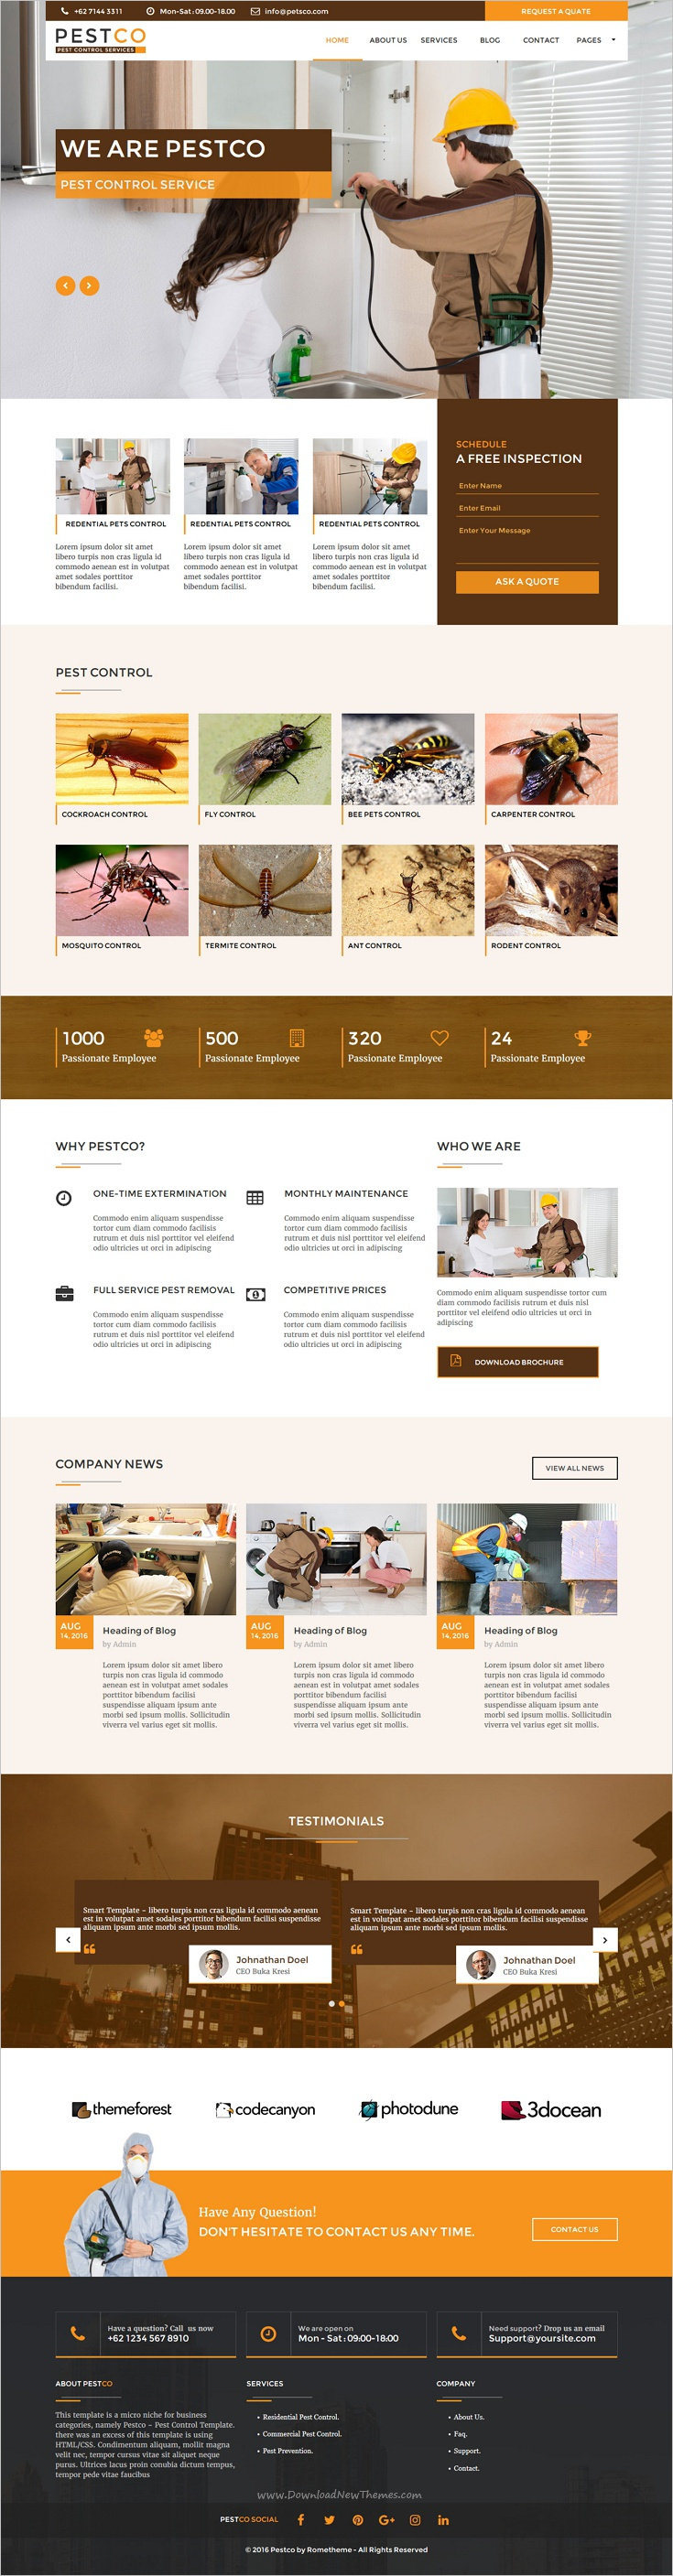 pestco is a clean modern and fully responsive muse template for pest services business website download now